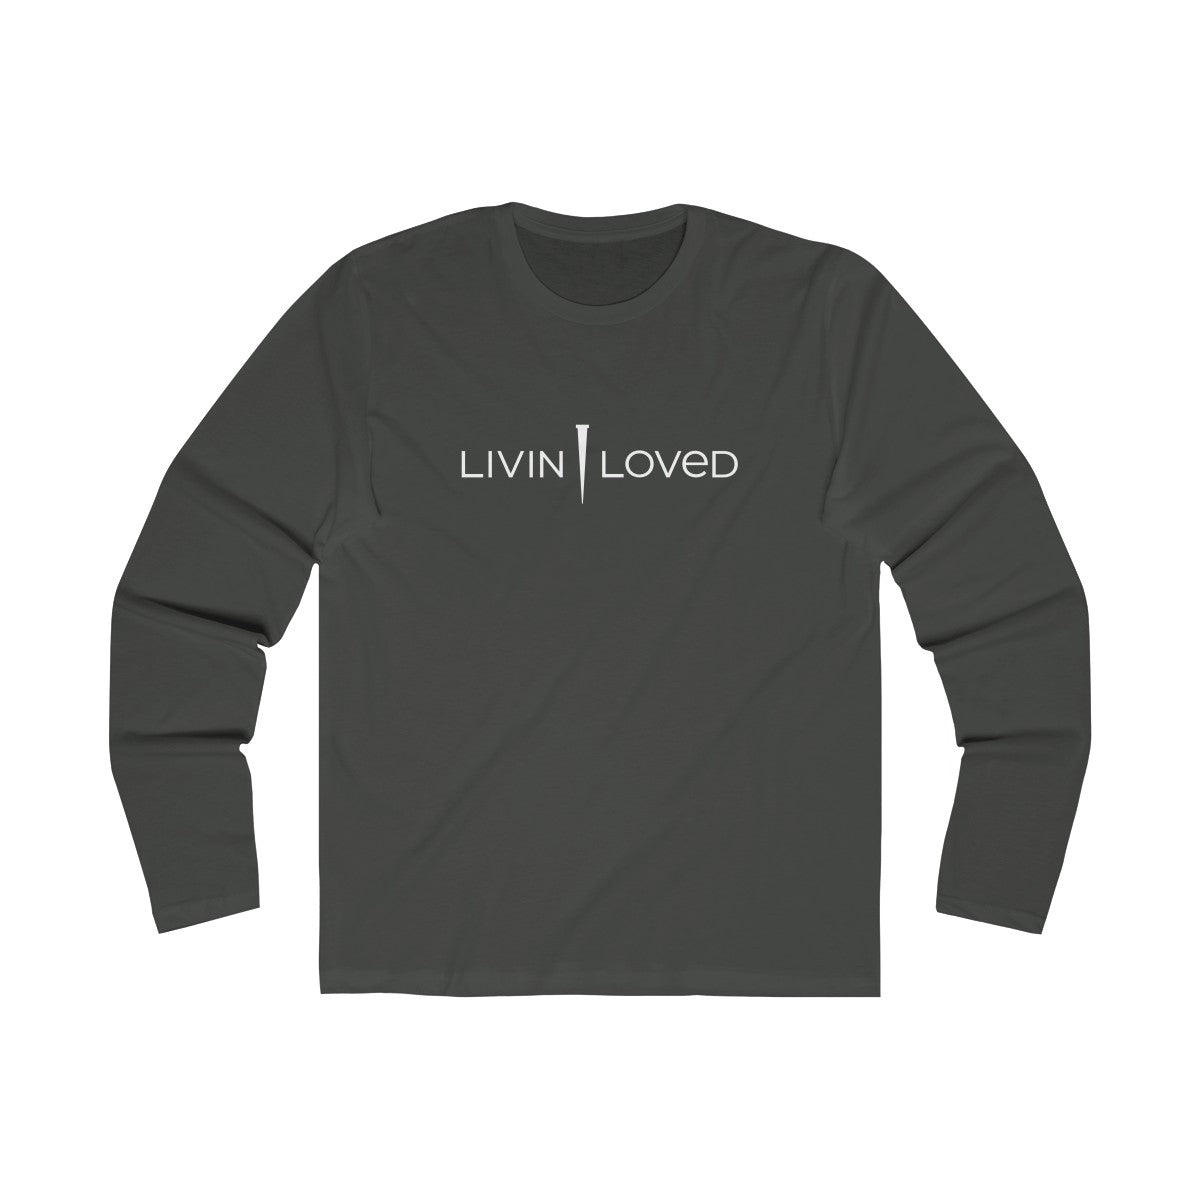 Livin Loved Men's Long Sleeve Crew Tee